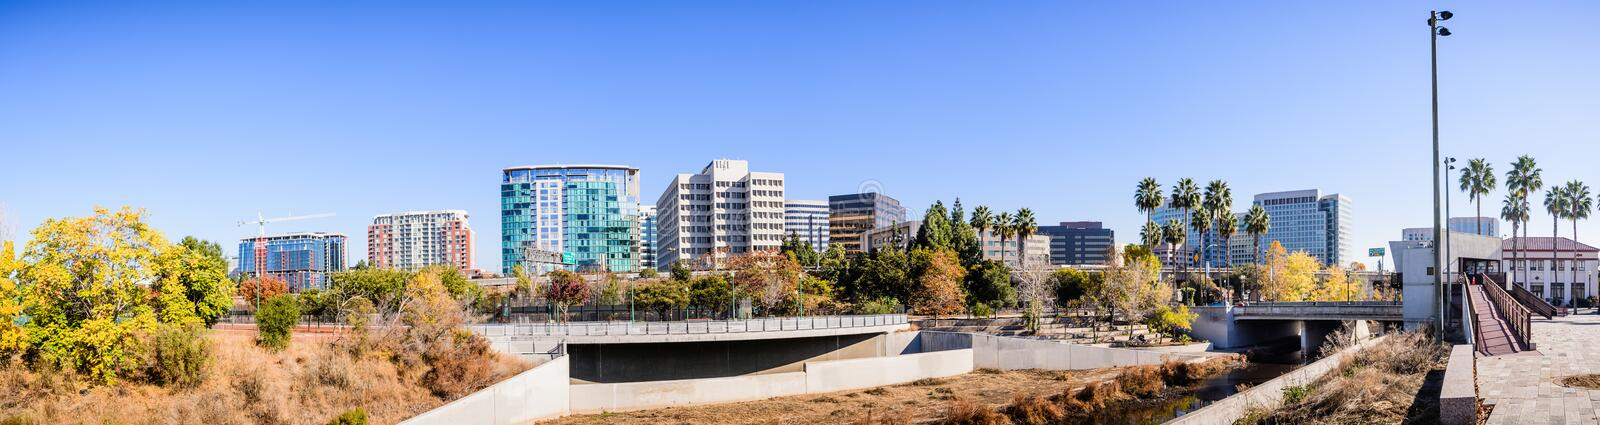 Panoramic view of San Jose`s downtown skyline as seen from the s. Horeline of Guadalupe river on a sunny fall day; Silicon Valley, California royalty free stock photos